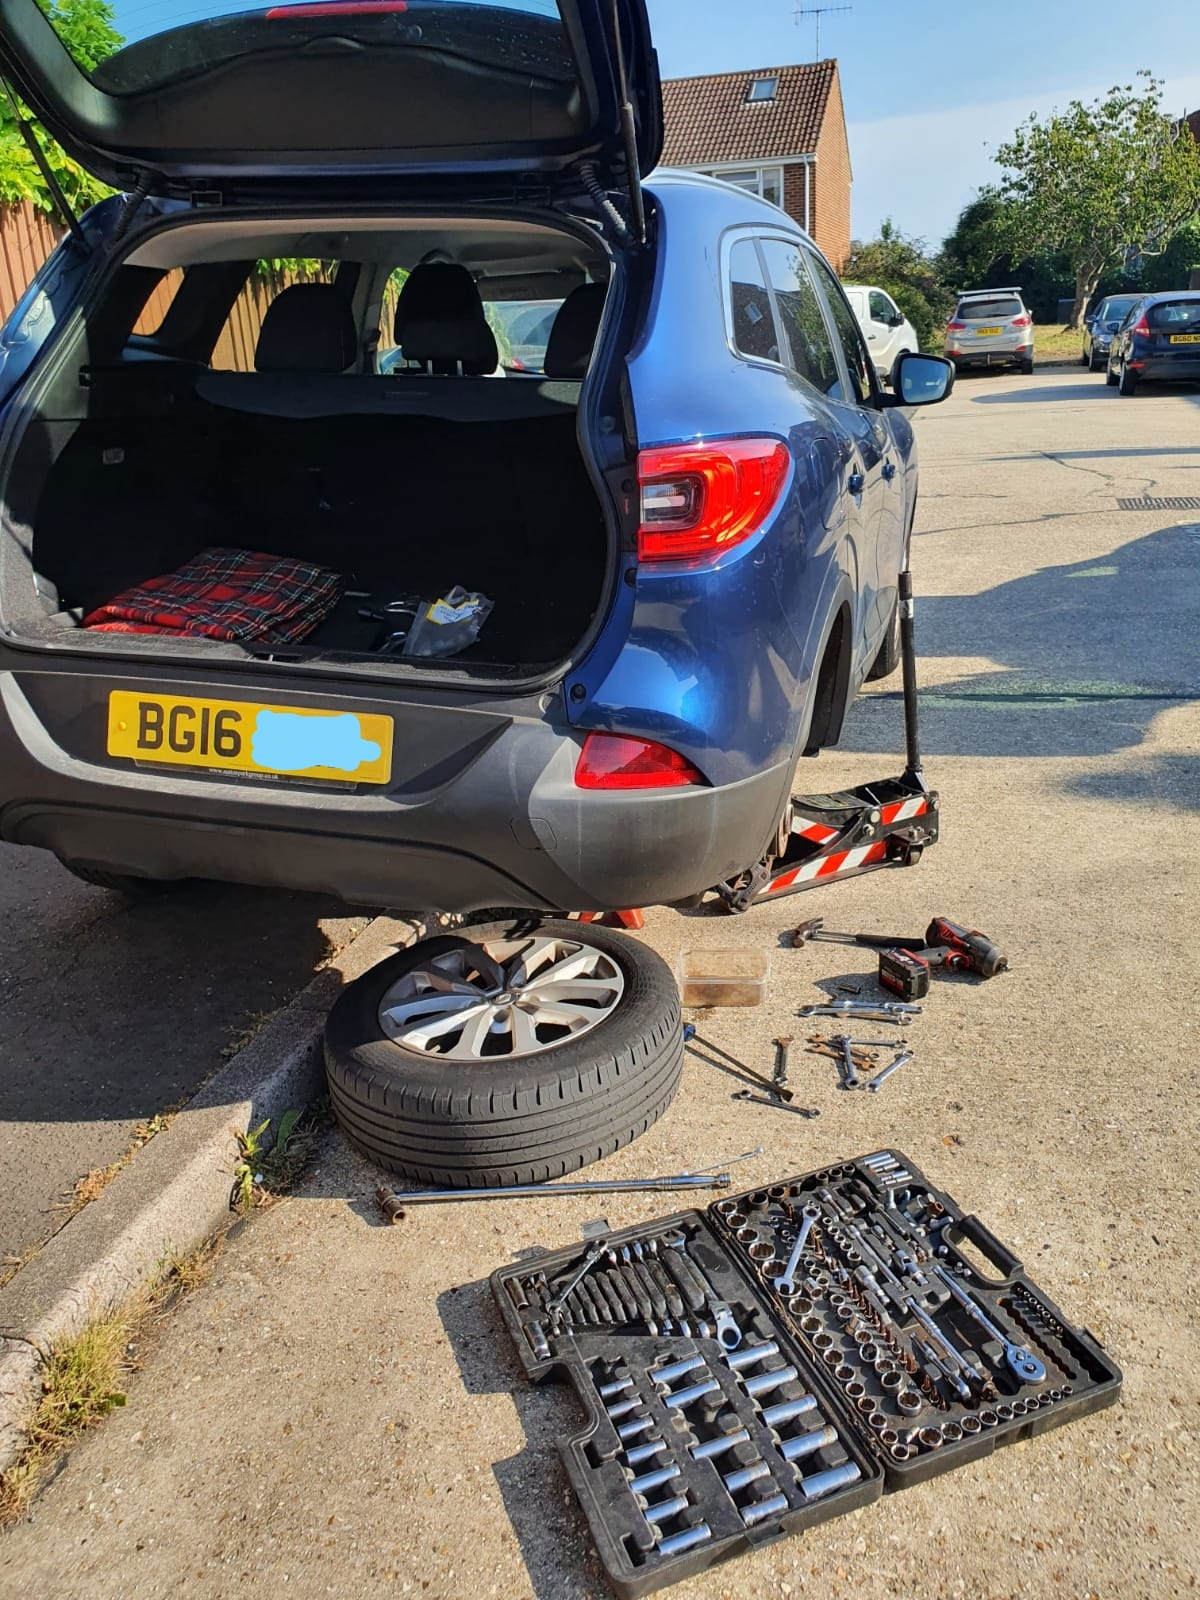 Mobile mechanic worthing brkaes discs pads